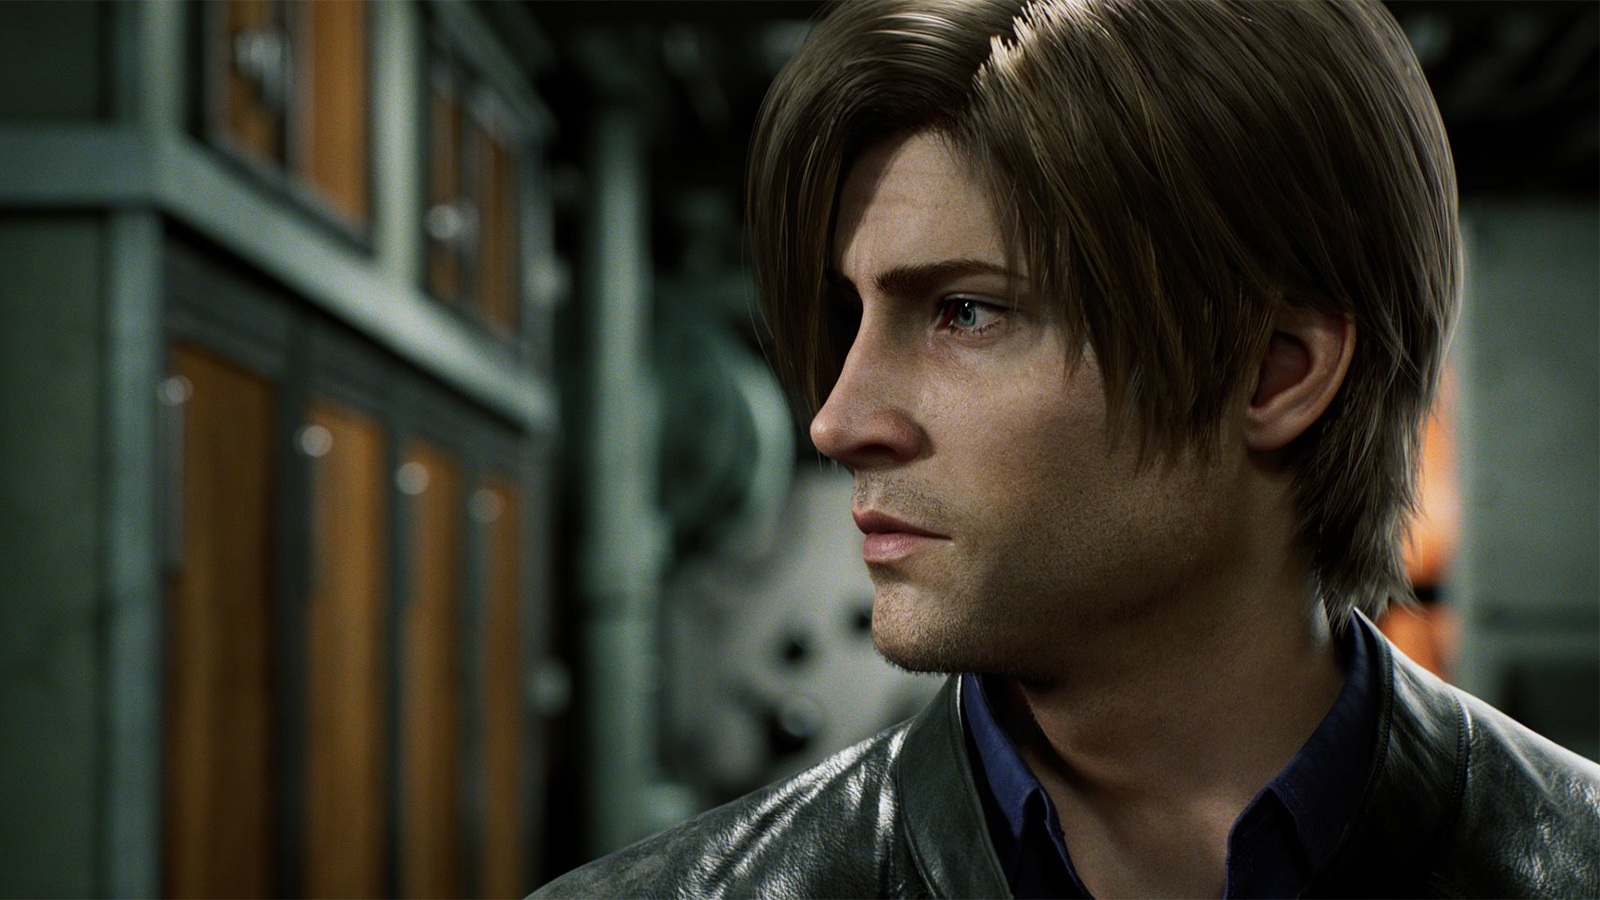 Leon Kennedy in Resident Evil Infinite Darkness on Netflix